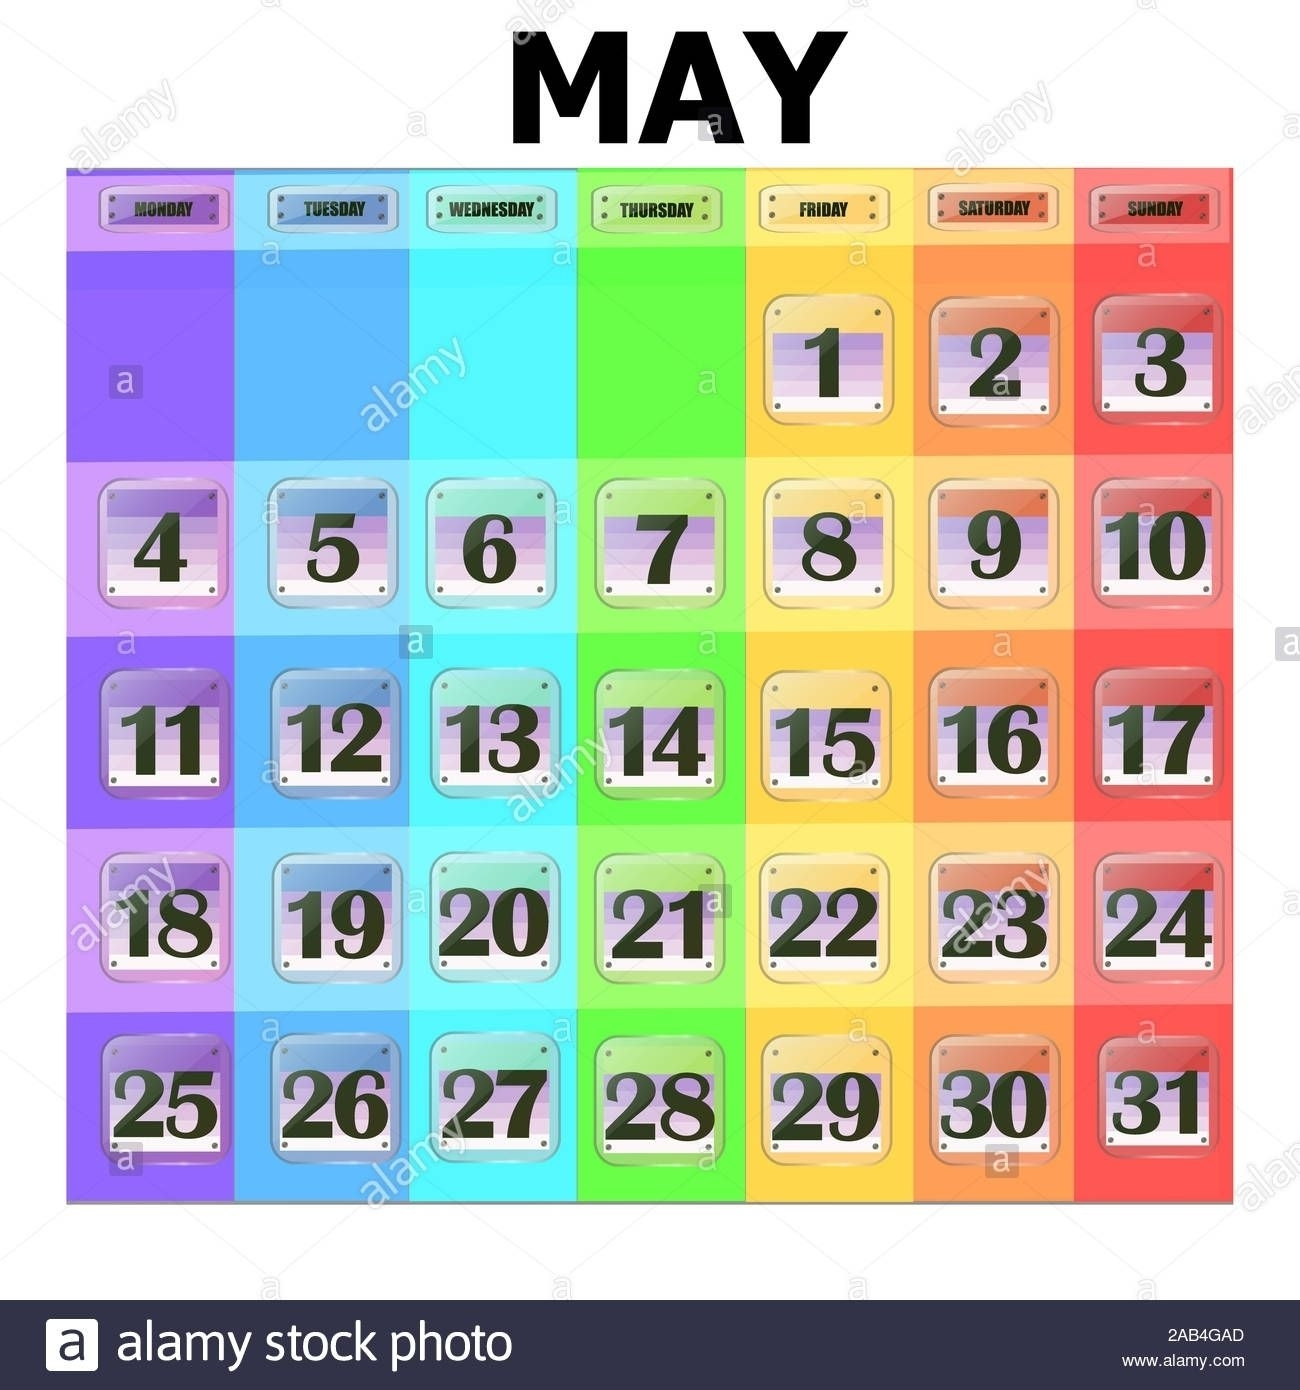 What Are The Special Days In 2020 Di 2020 with Special Days On Calender For 2020